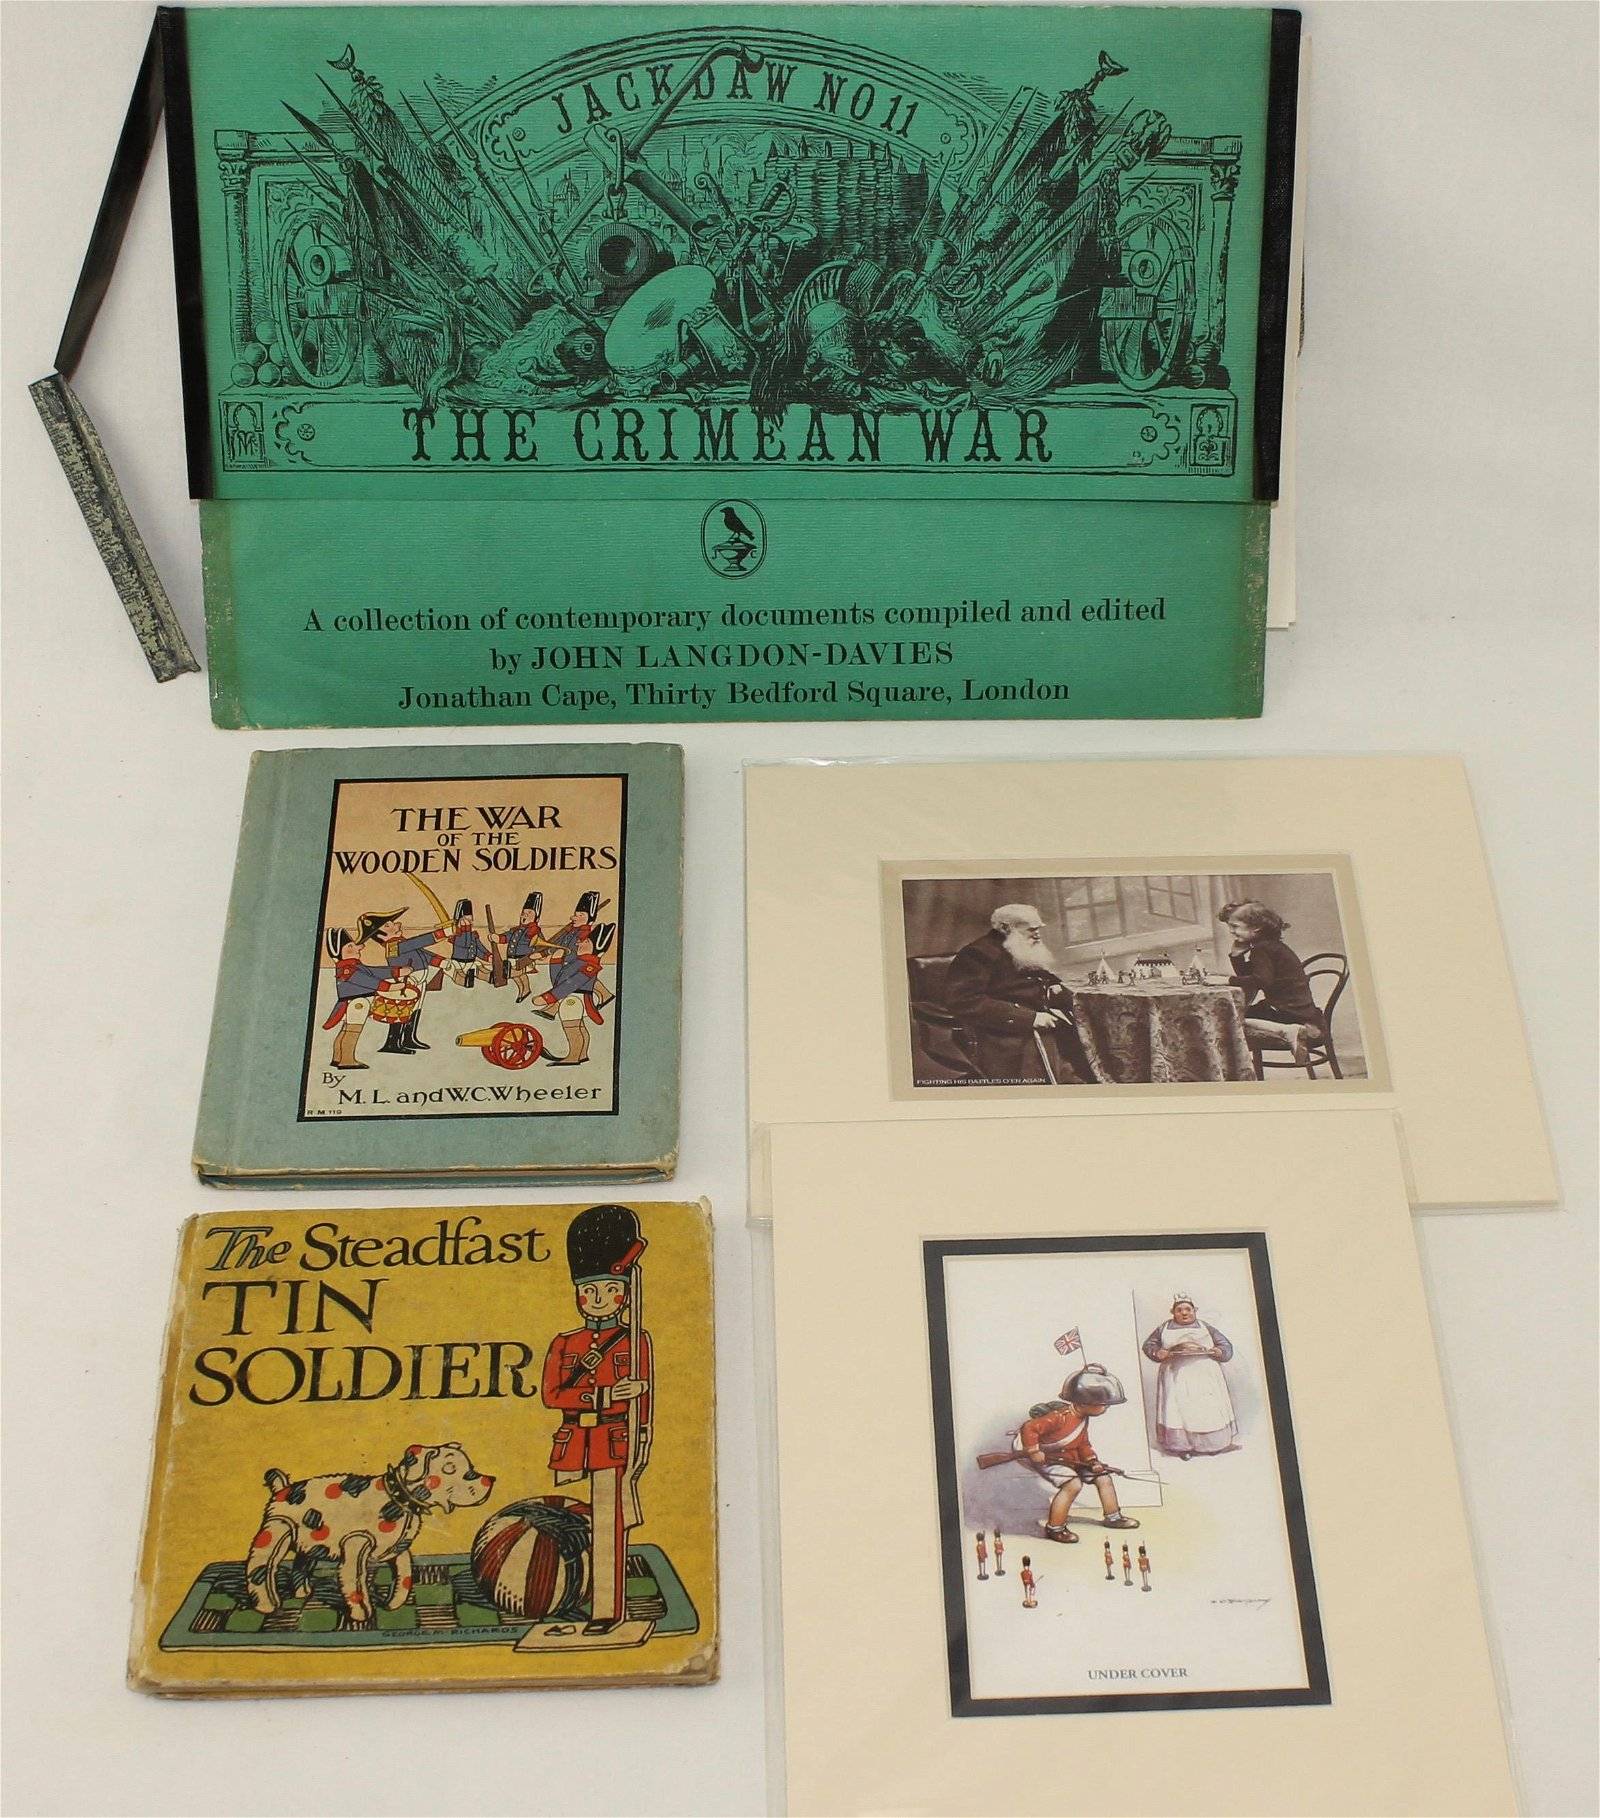 Lot of Books and Printed Materials